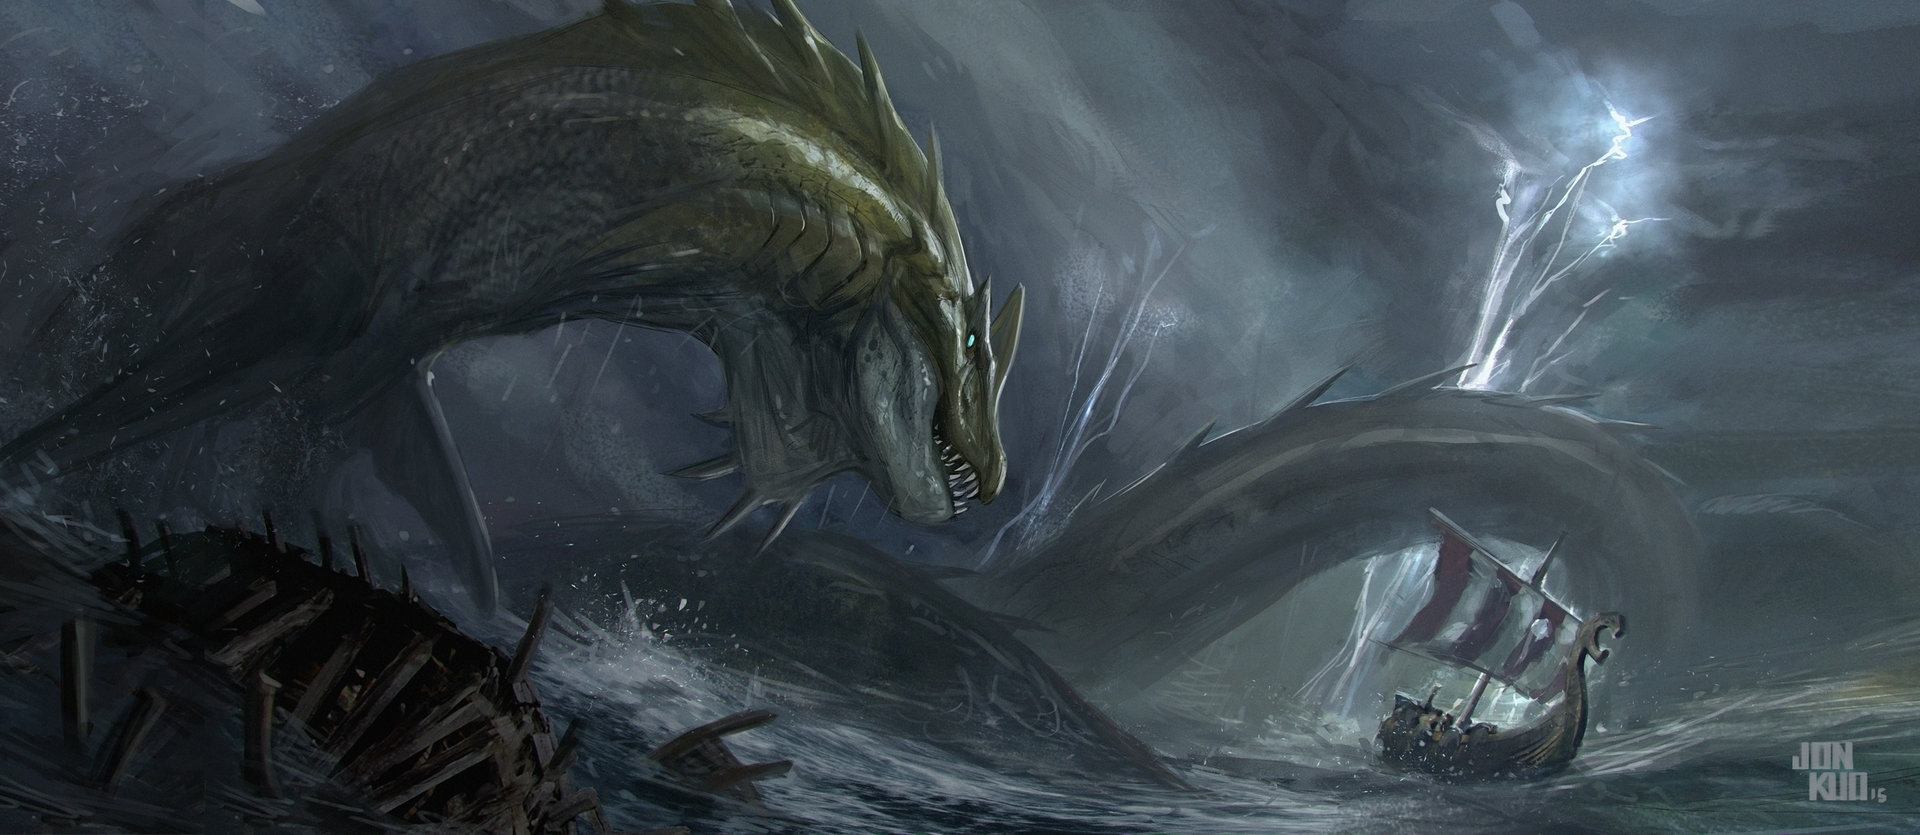 Images of Sea Monster | 1920x835